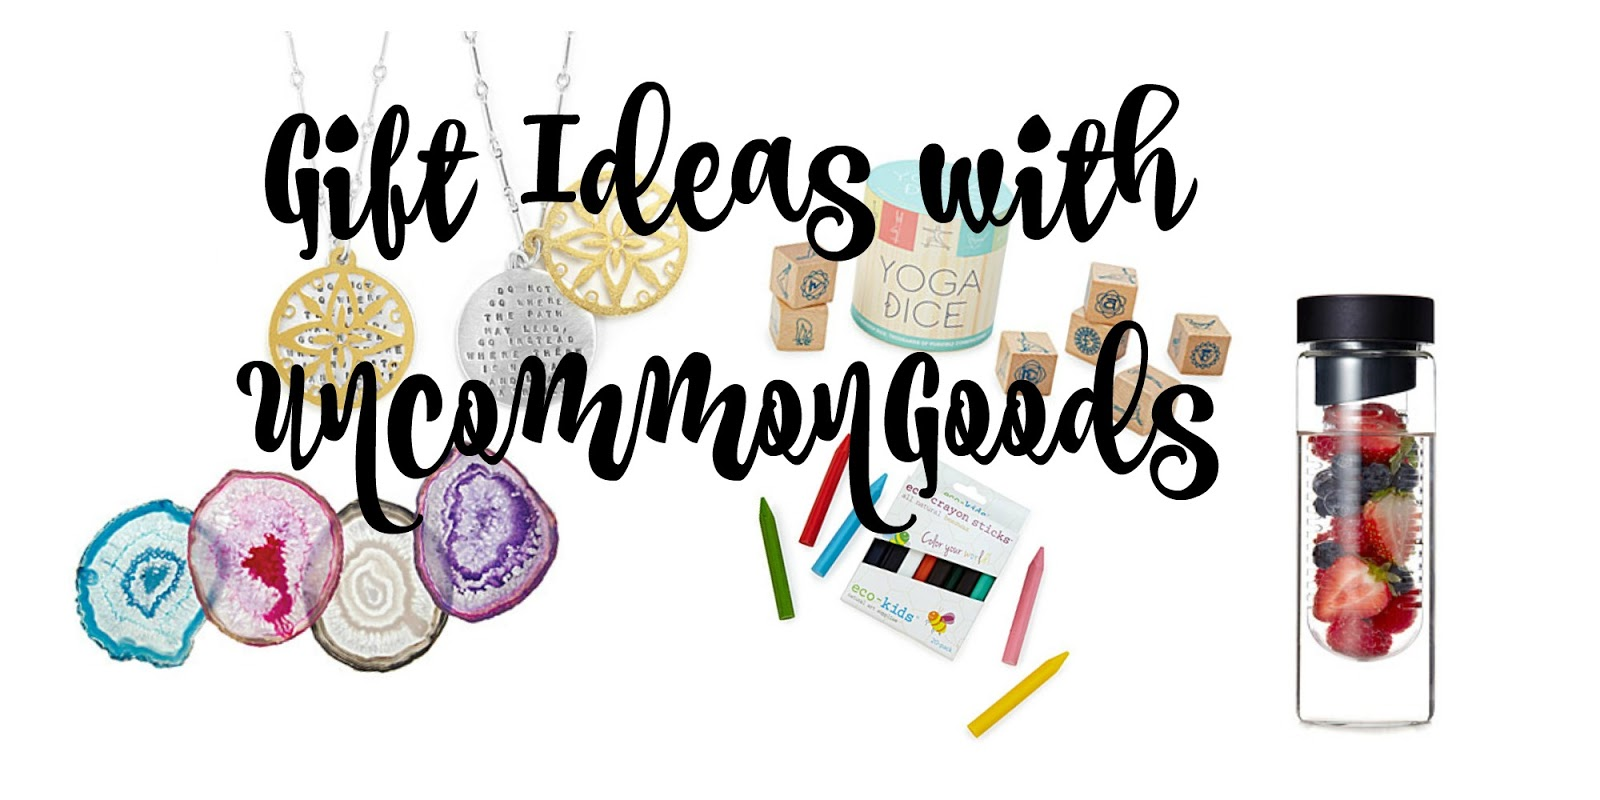 Gift ideas with UncommonGoods (Sponsored)